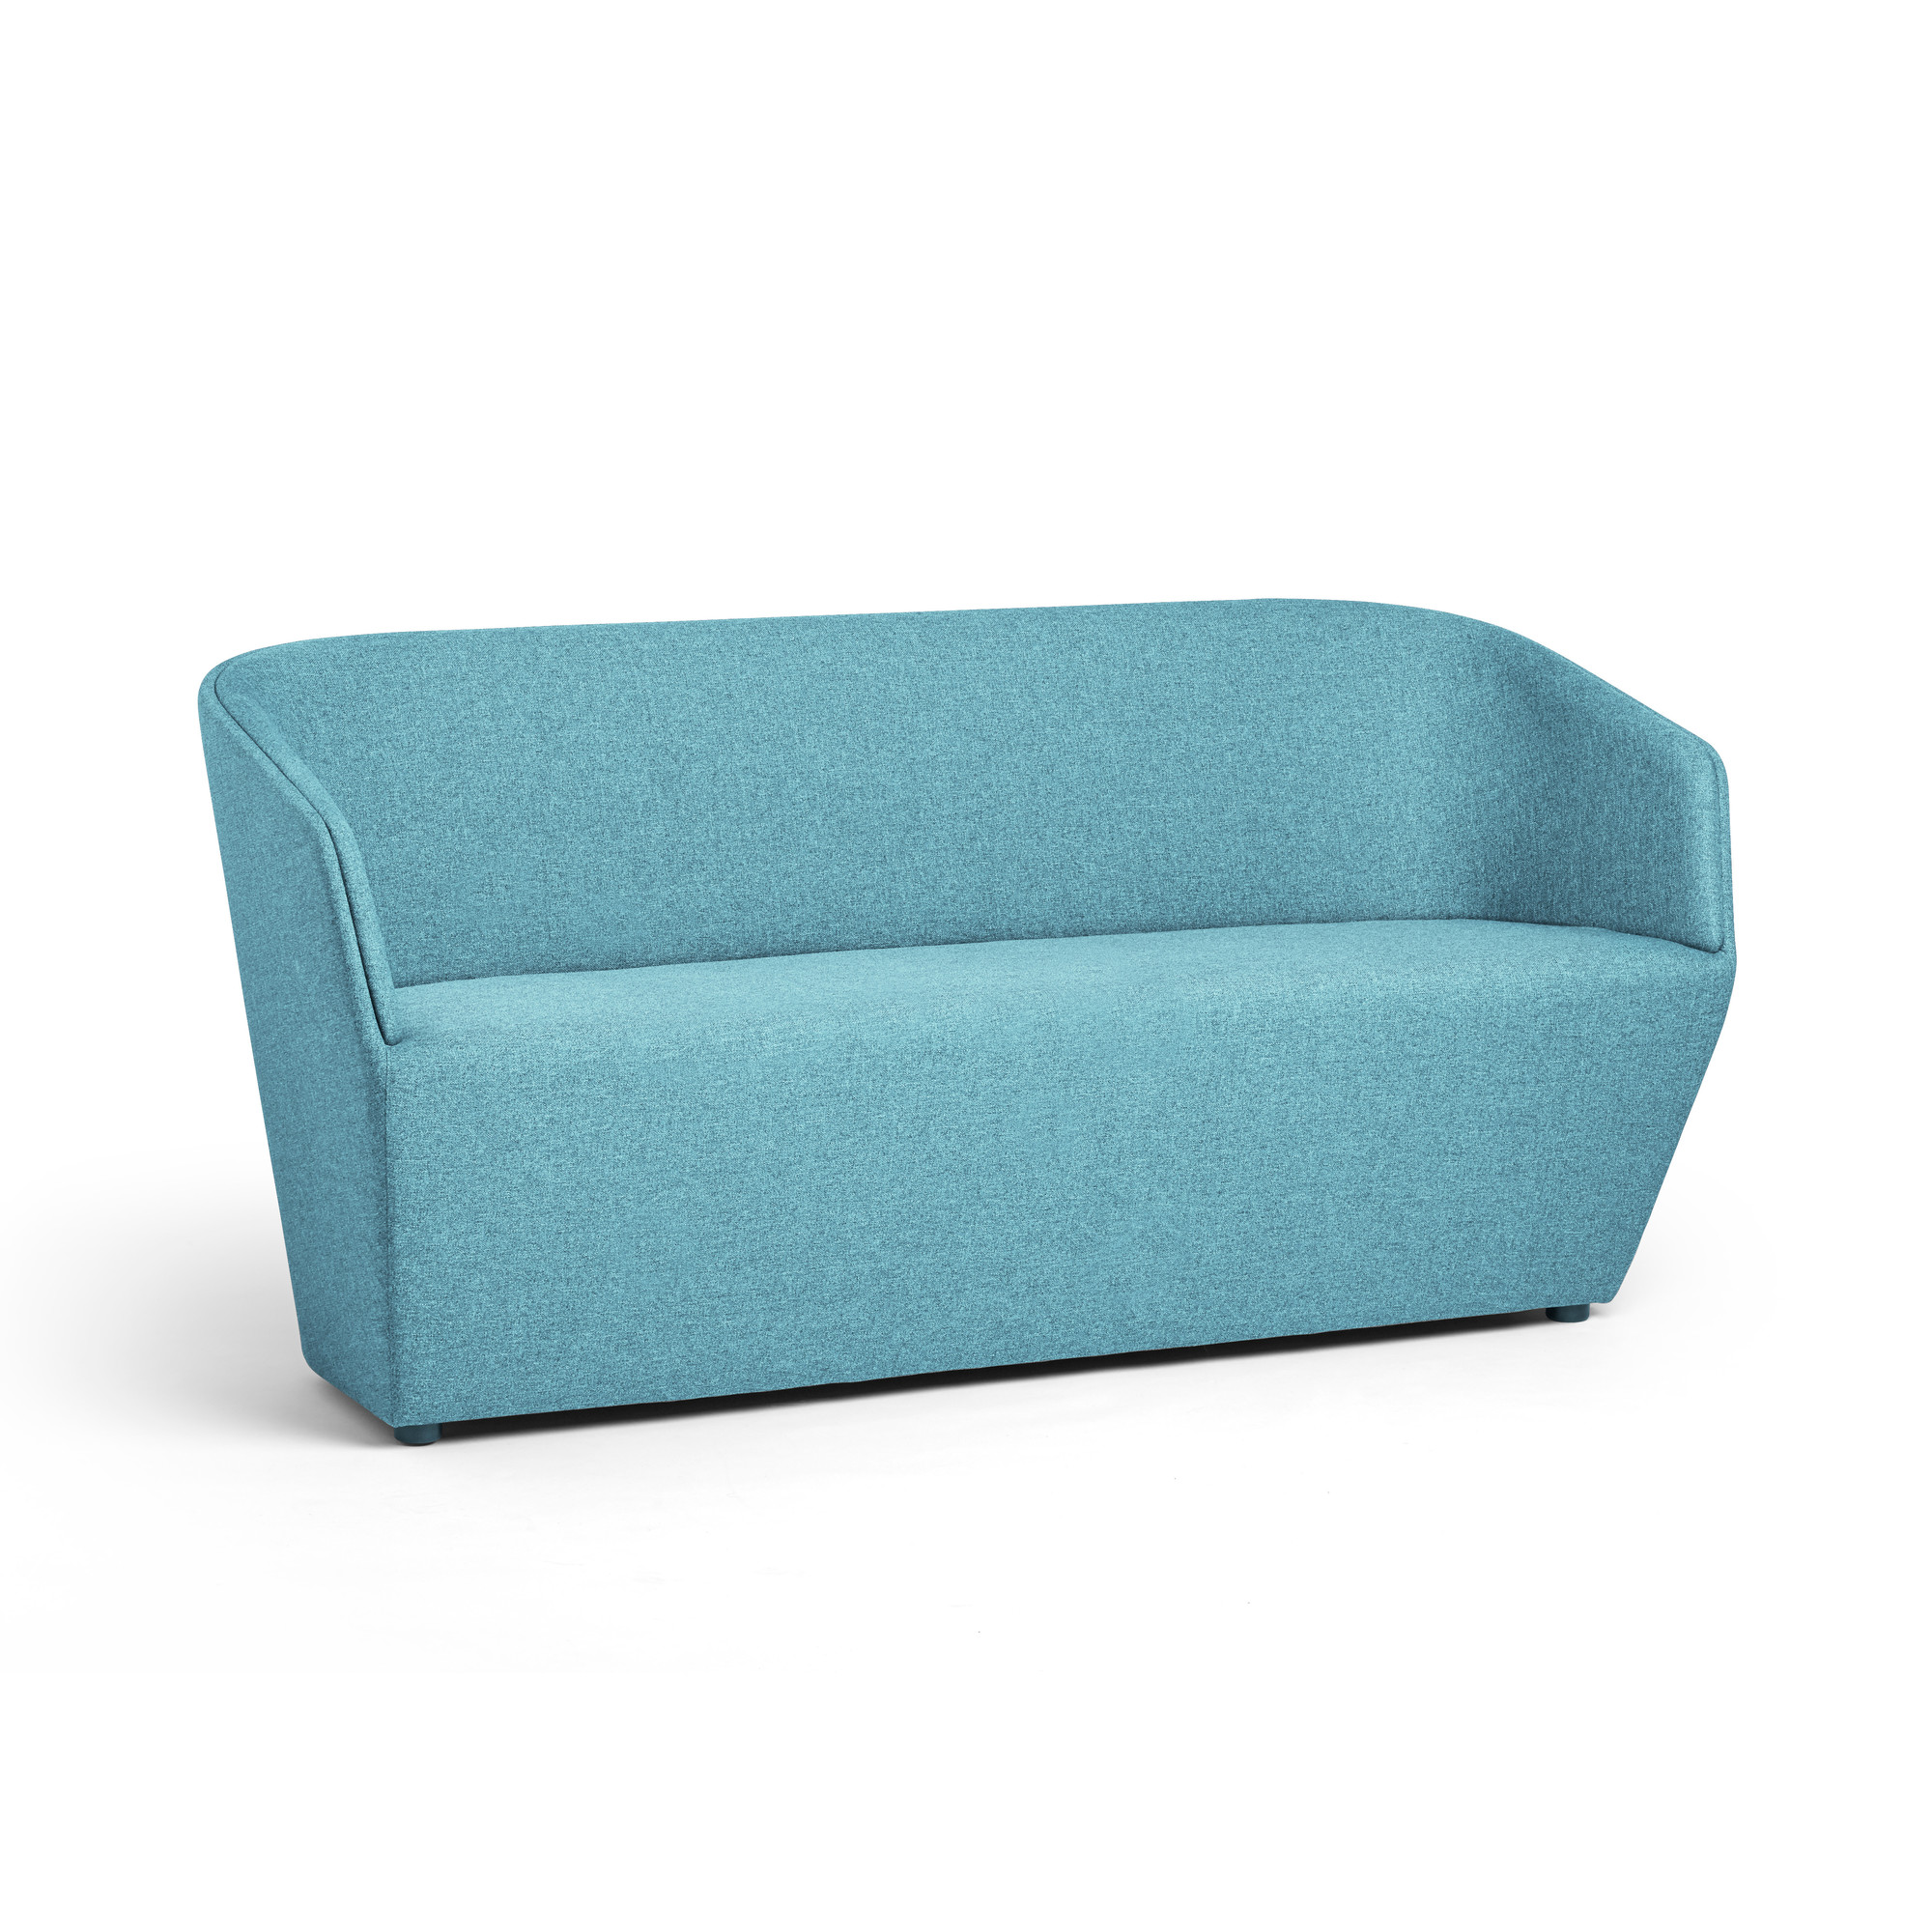 Superior Blue Pitch Sofa,Blue,hi Res. Loading Zoom